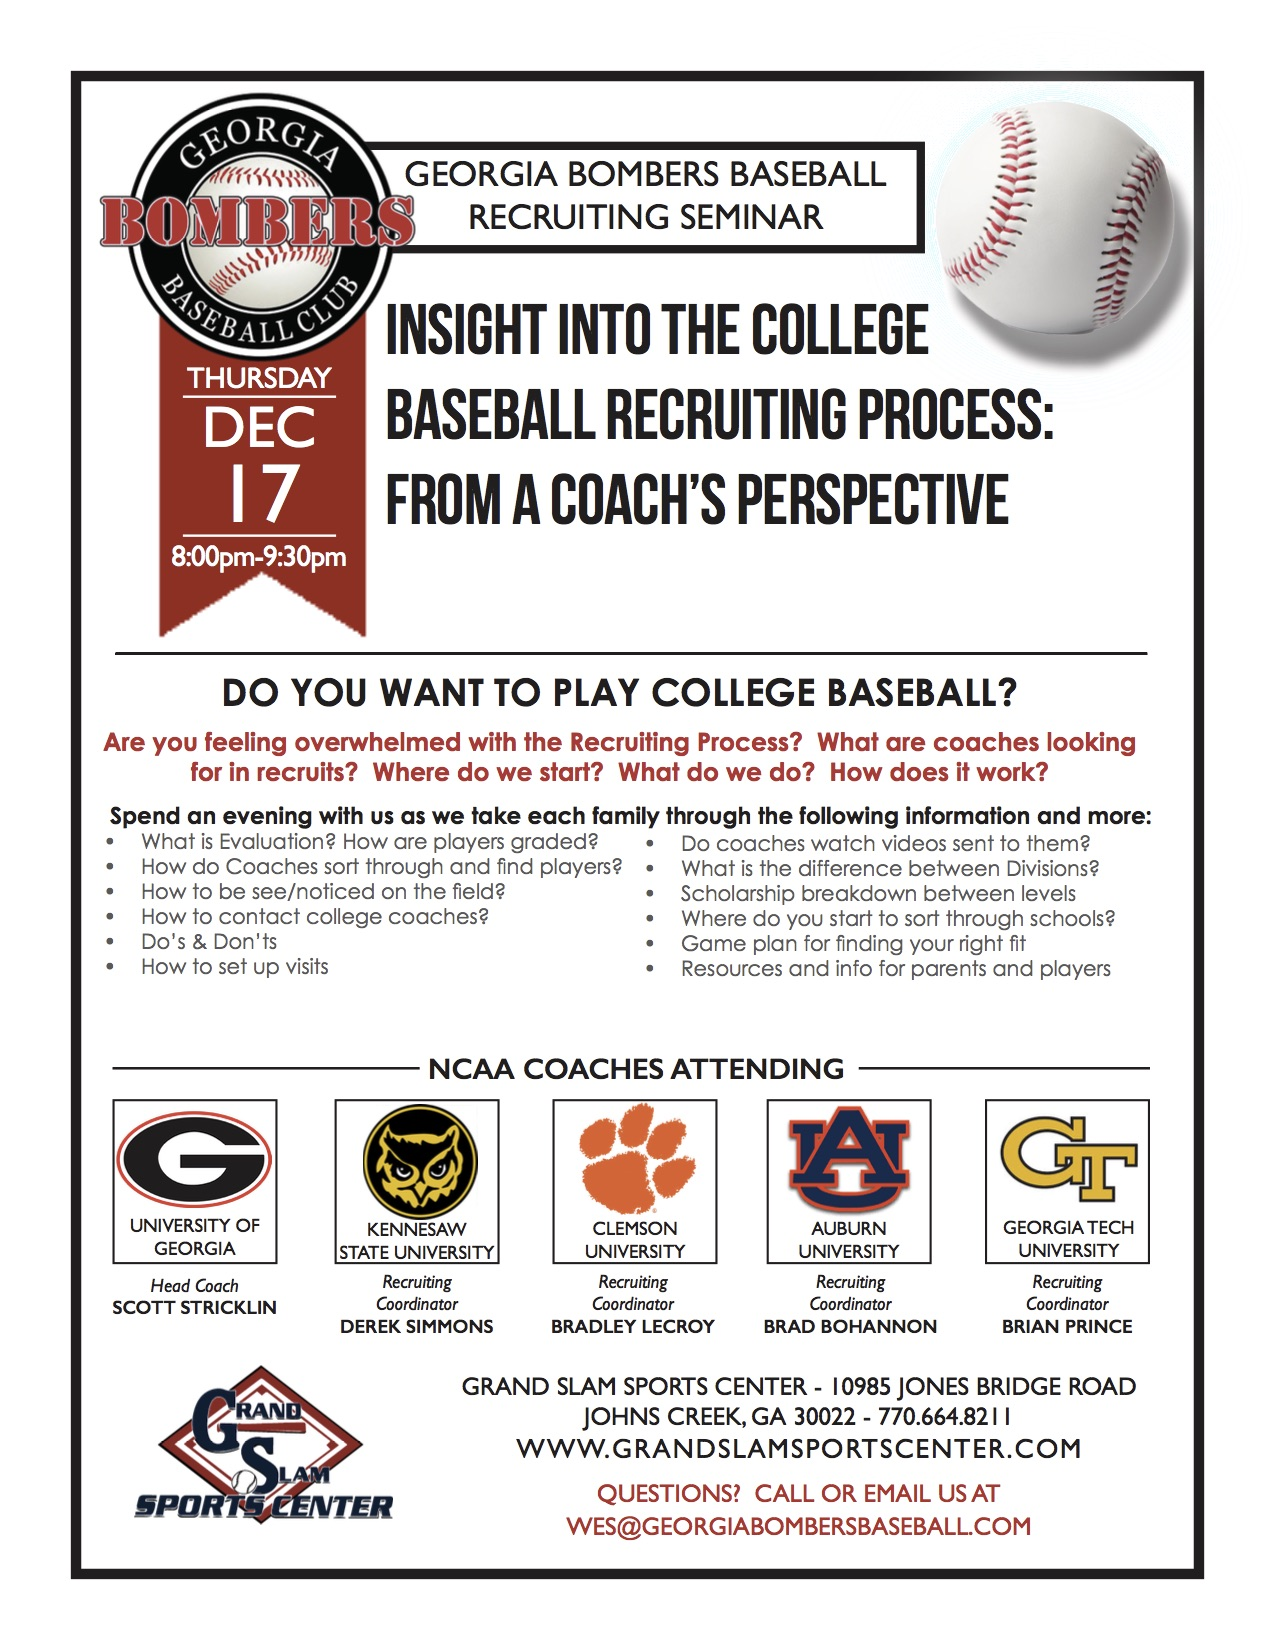 Georgia Bombers College Recruiting Seminar – December 17th